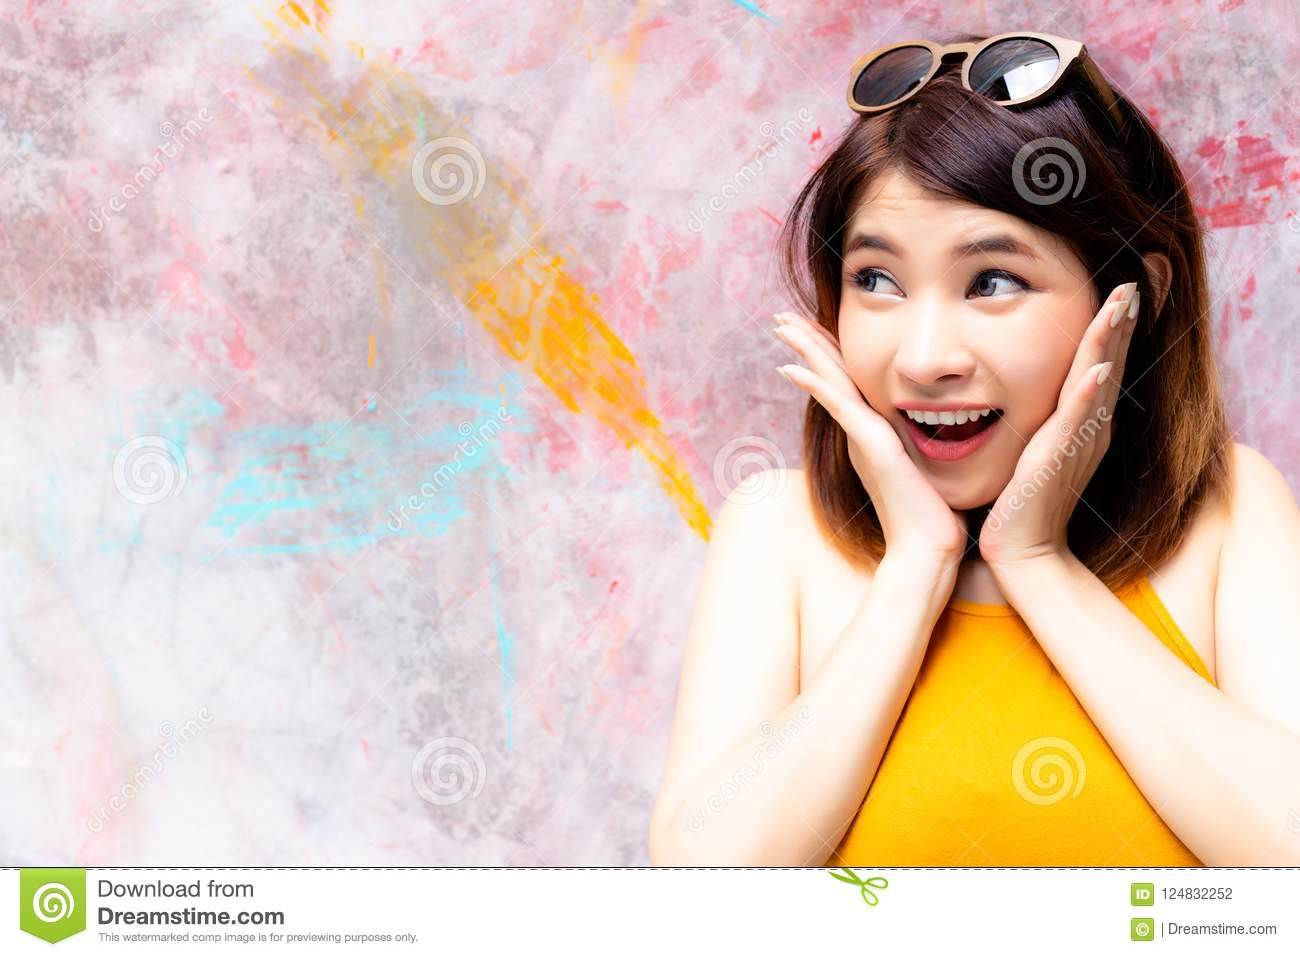 Gorgeous woman is looking at copy space. Charming beautiful woman acts like a surprise, happy, shock, admire or wow some goods, p